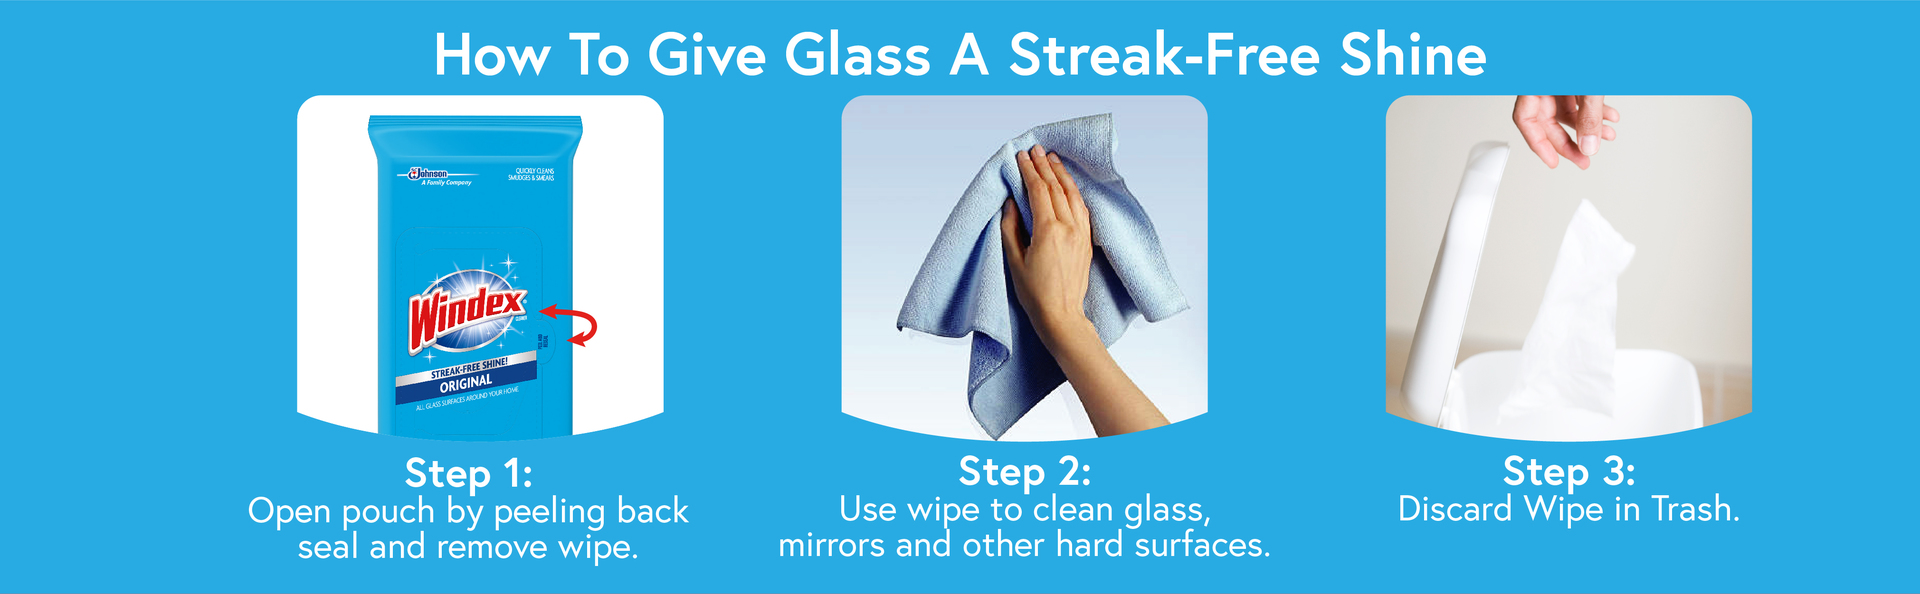 How To Give Glass A Streak-Free Shine